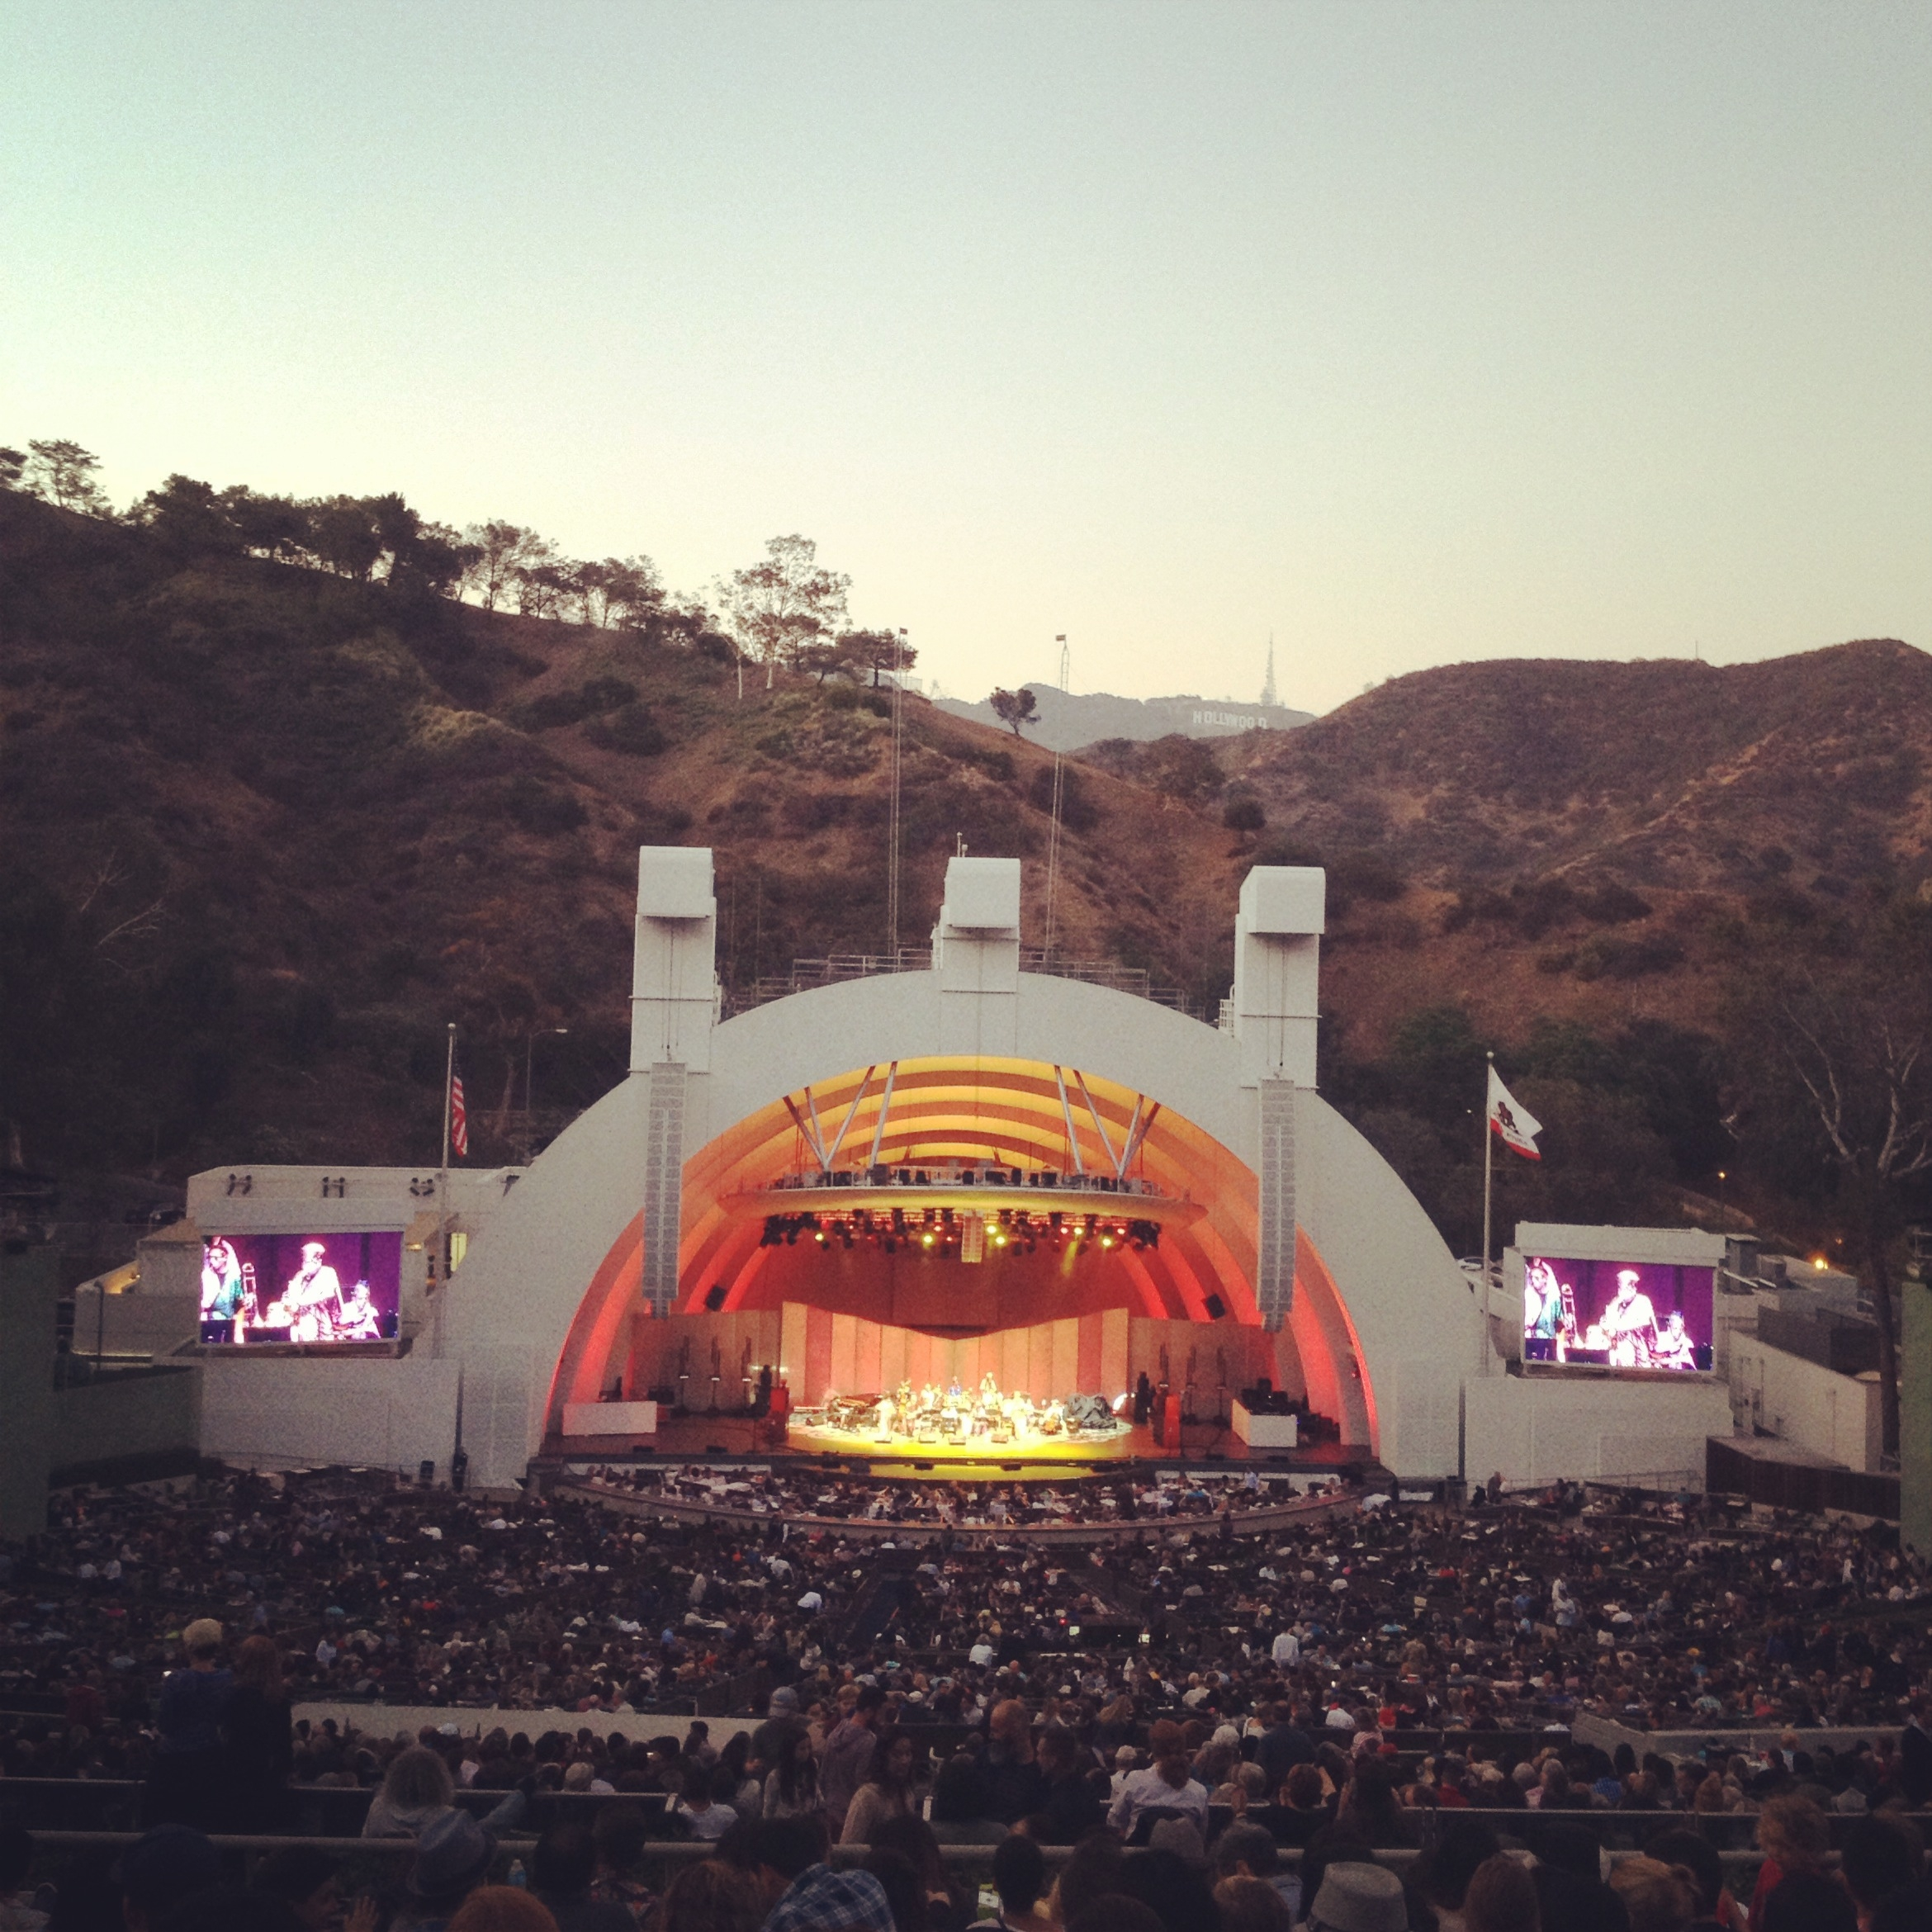 The Hollywood Bowl >> Destination Discount Save On Tickets To The Hollywood Bowl The Source